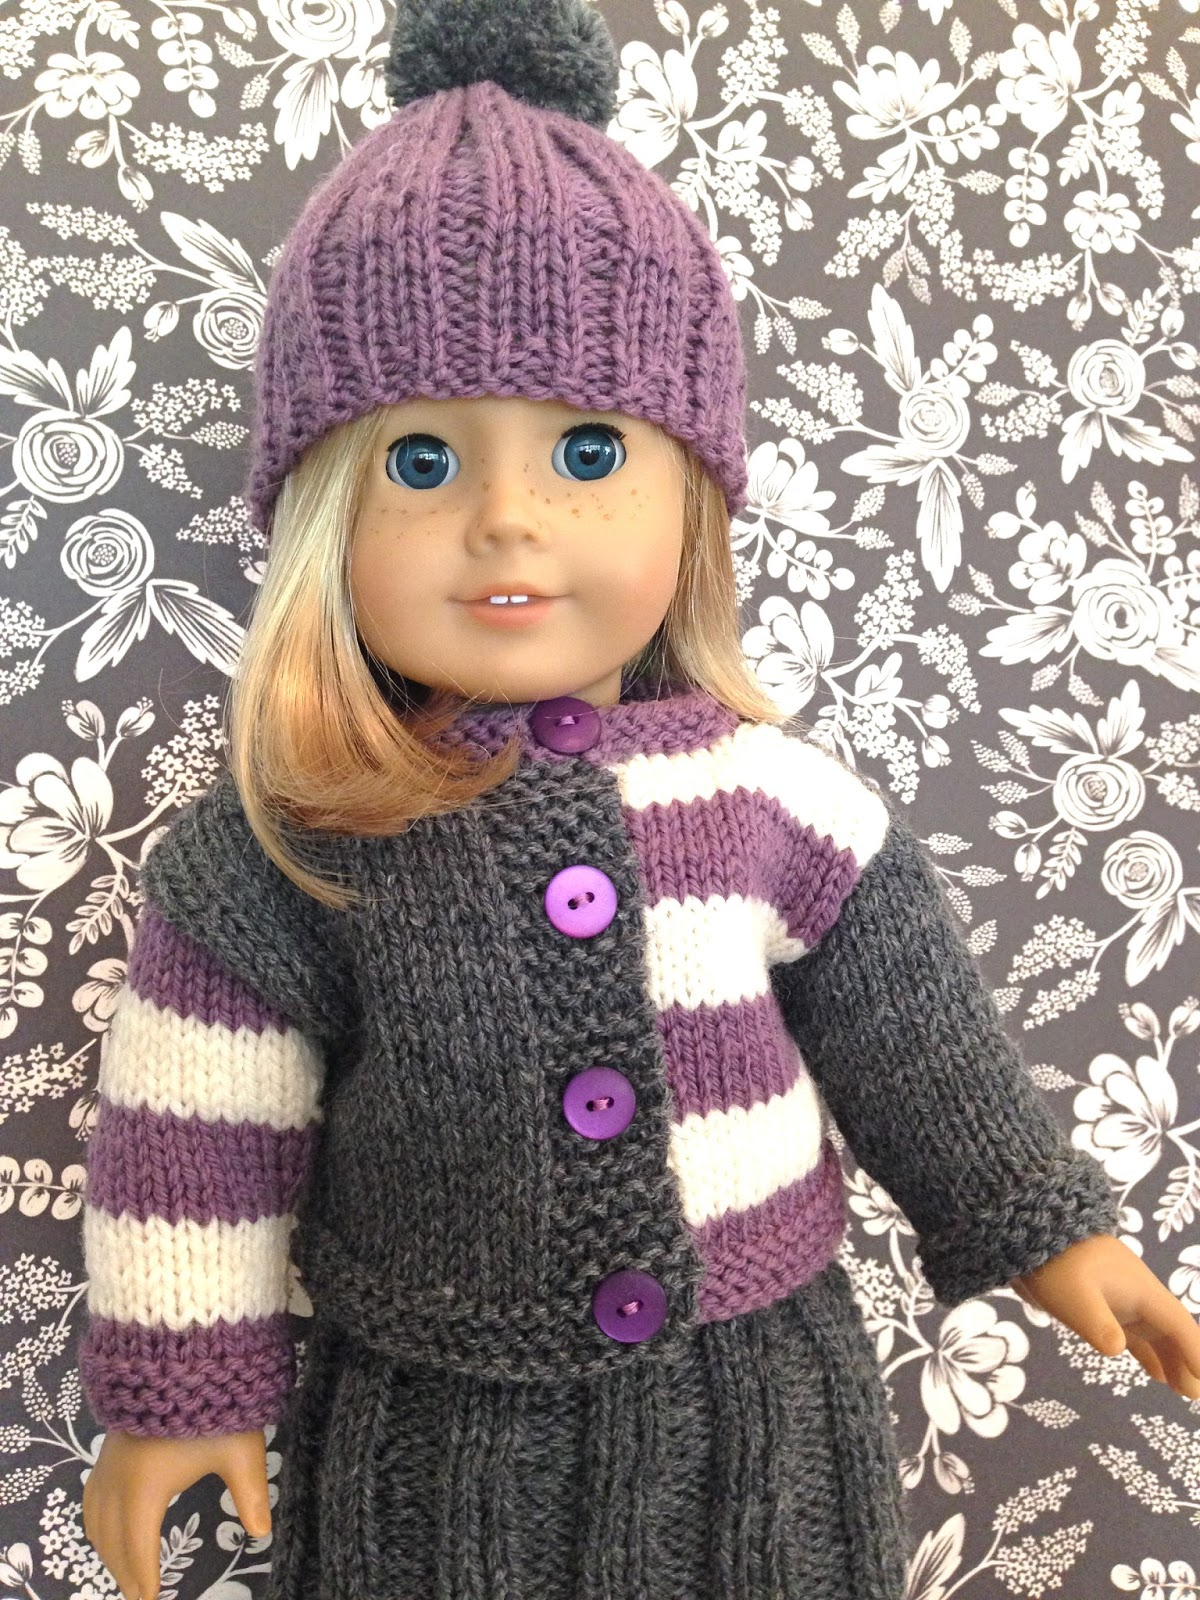 Famous American Girl Doll Knitting Patterns Free Crest - Blanket ...